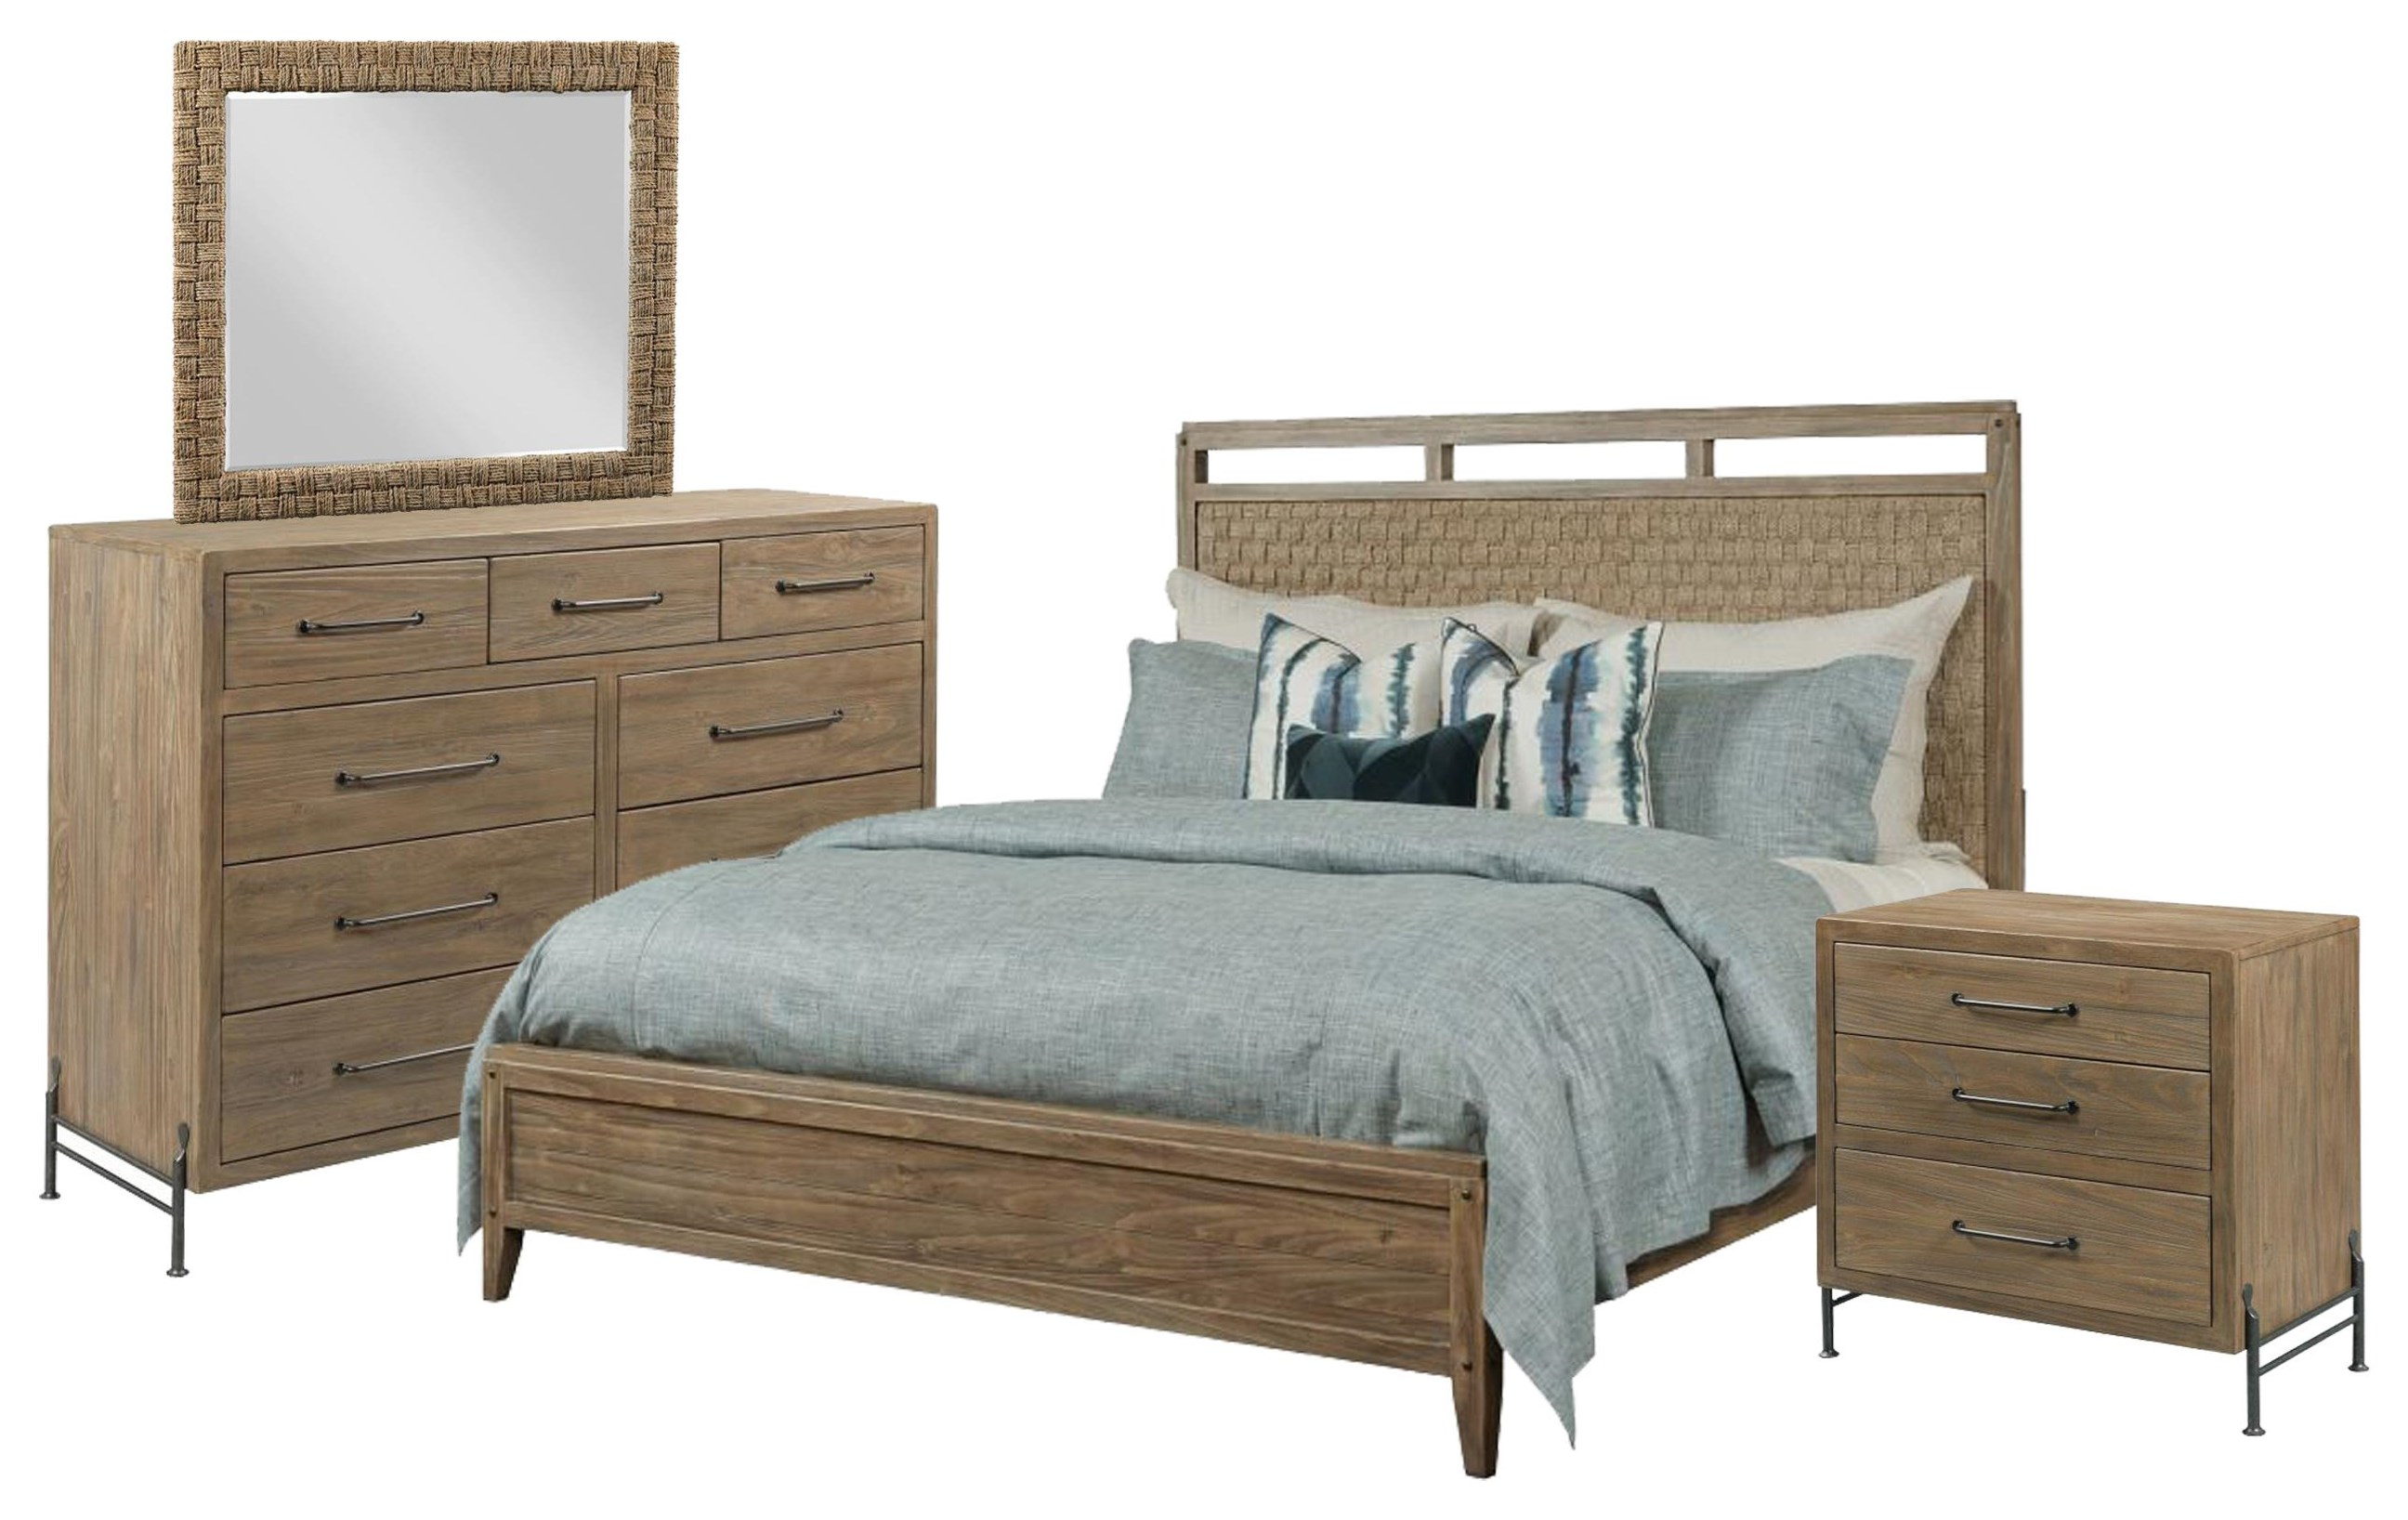 Modern Forge Queen Woven Bed, Chest, Mirror, Nightstand by Kincaid Furniture at Johnny Janosik